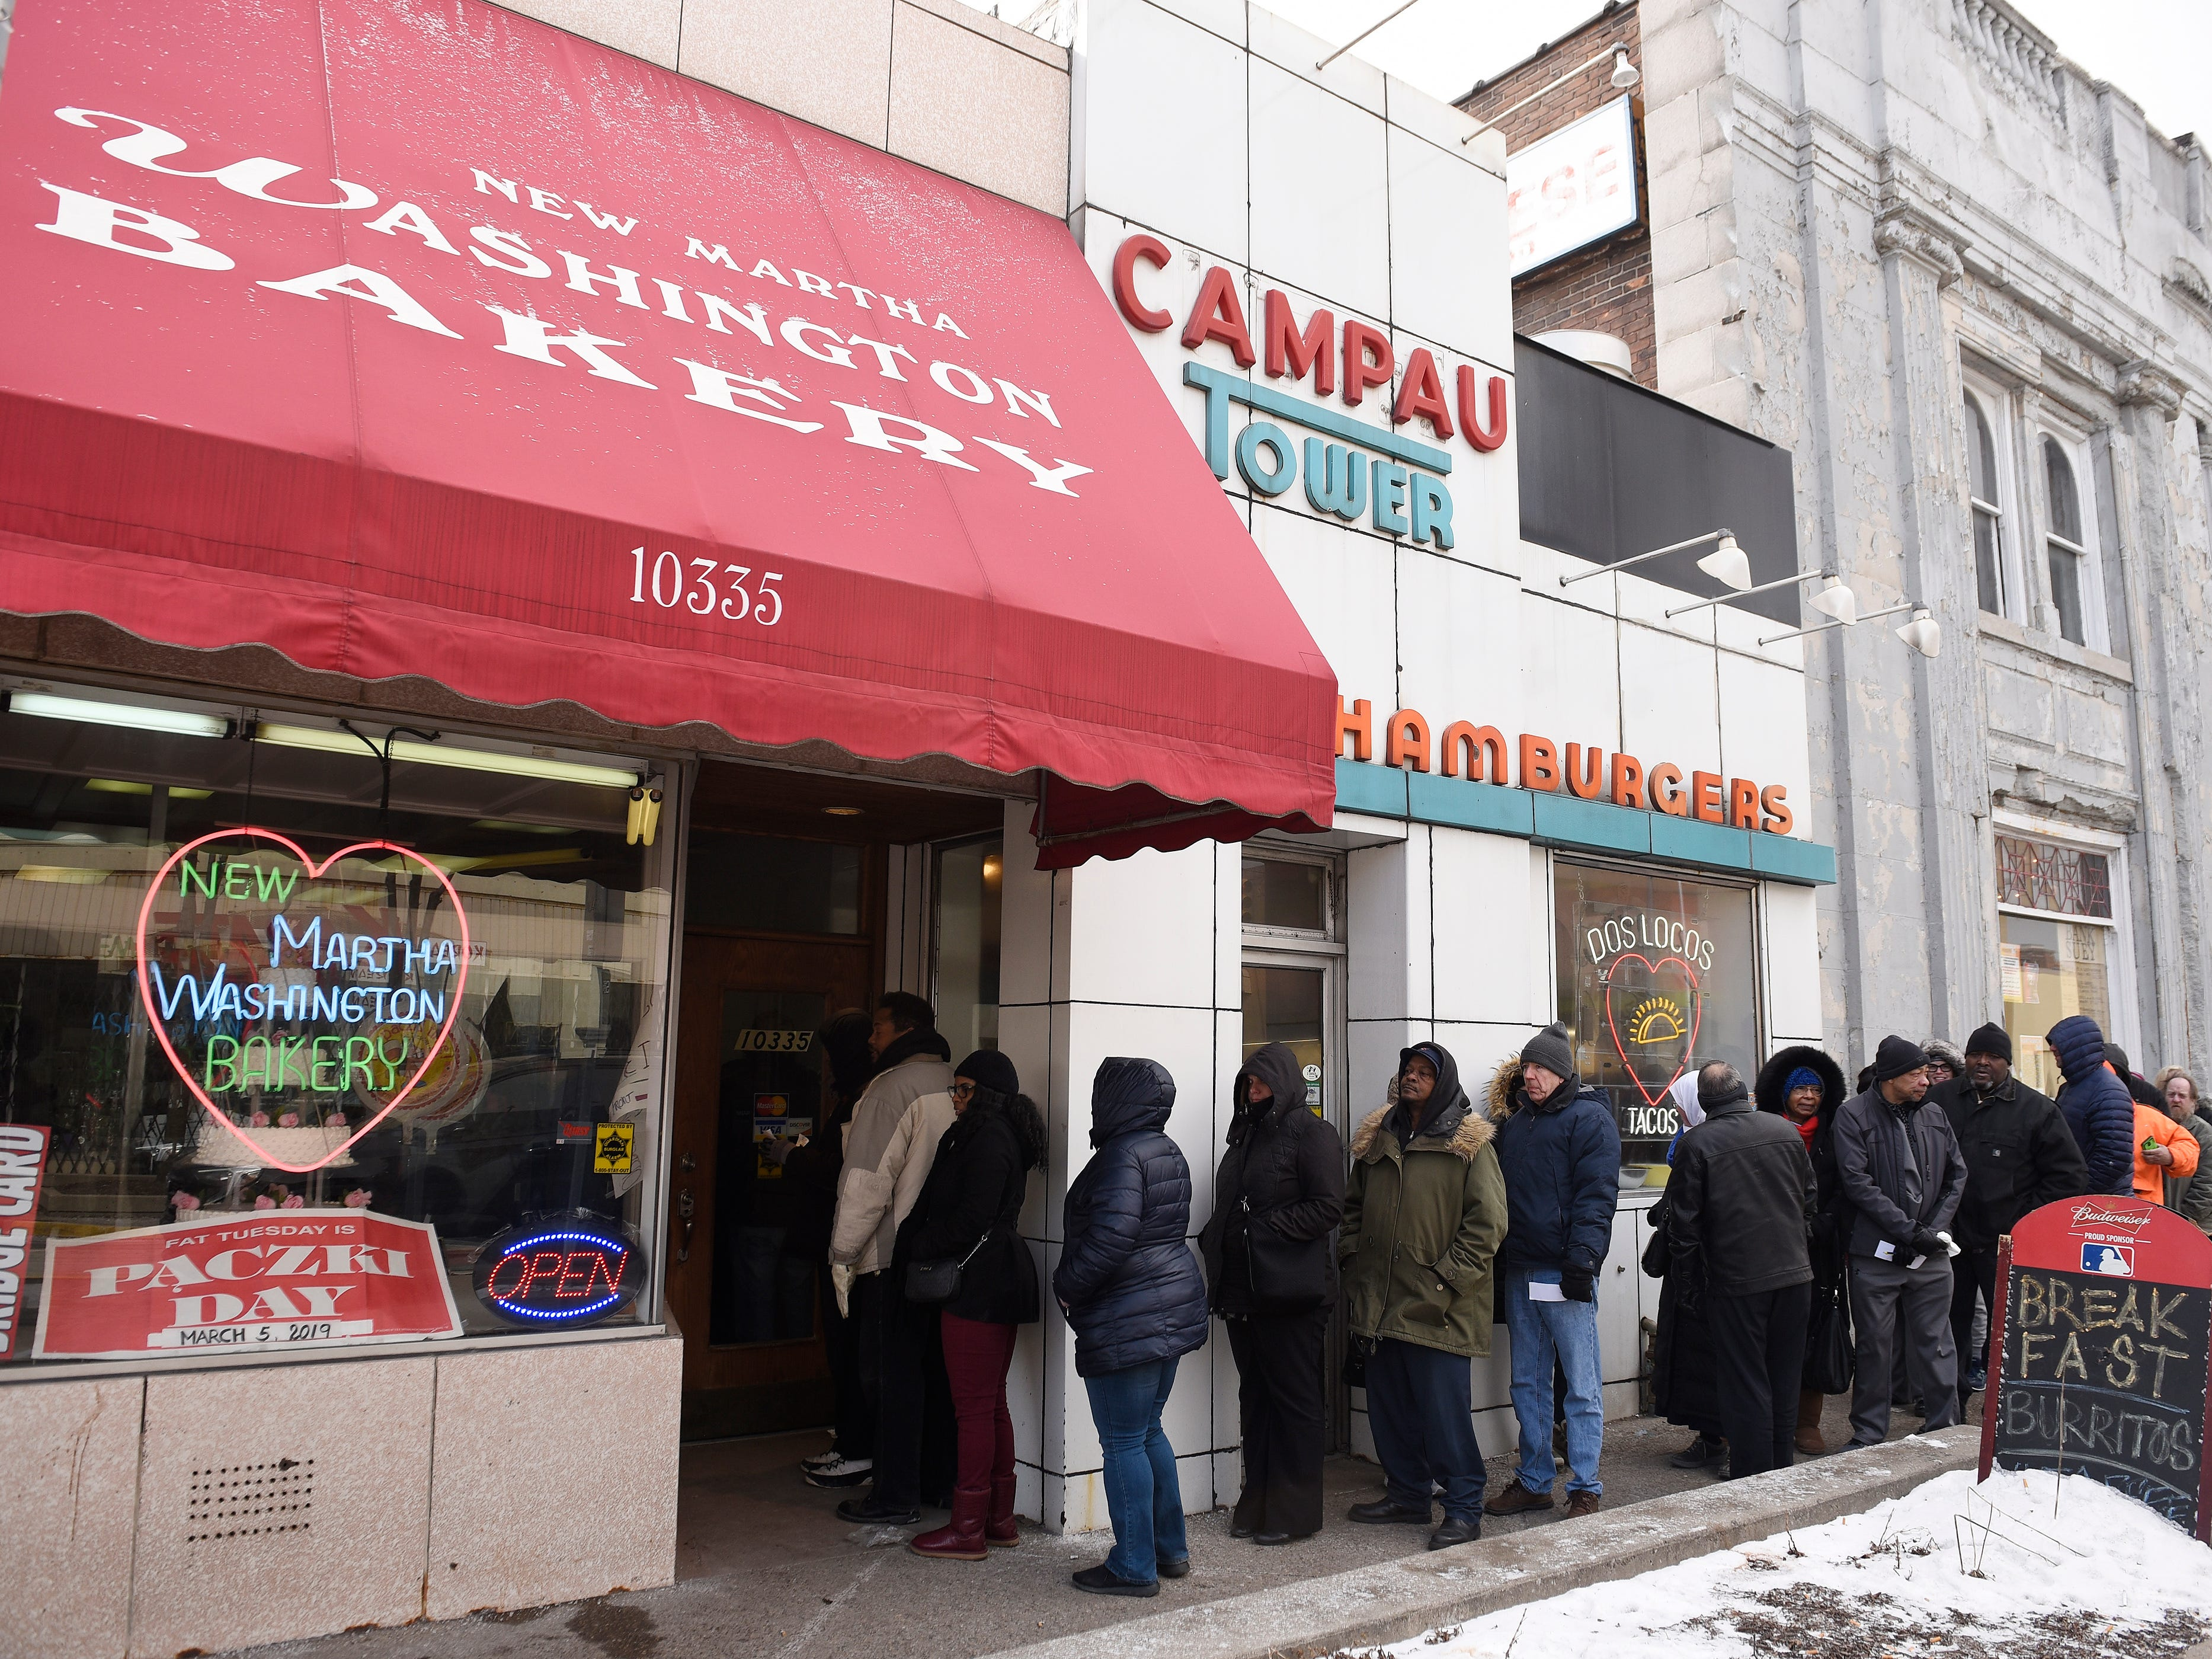 A long line of customers wait to enter the New Martha Washington Bakery to purchase their paczki.